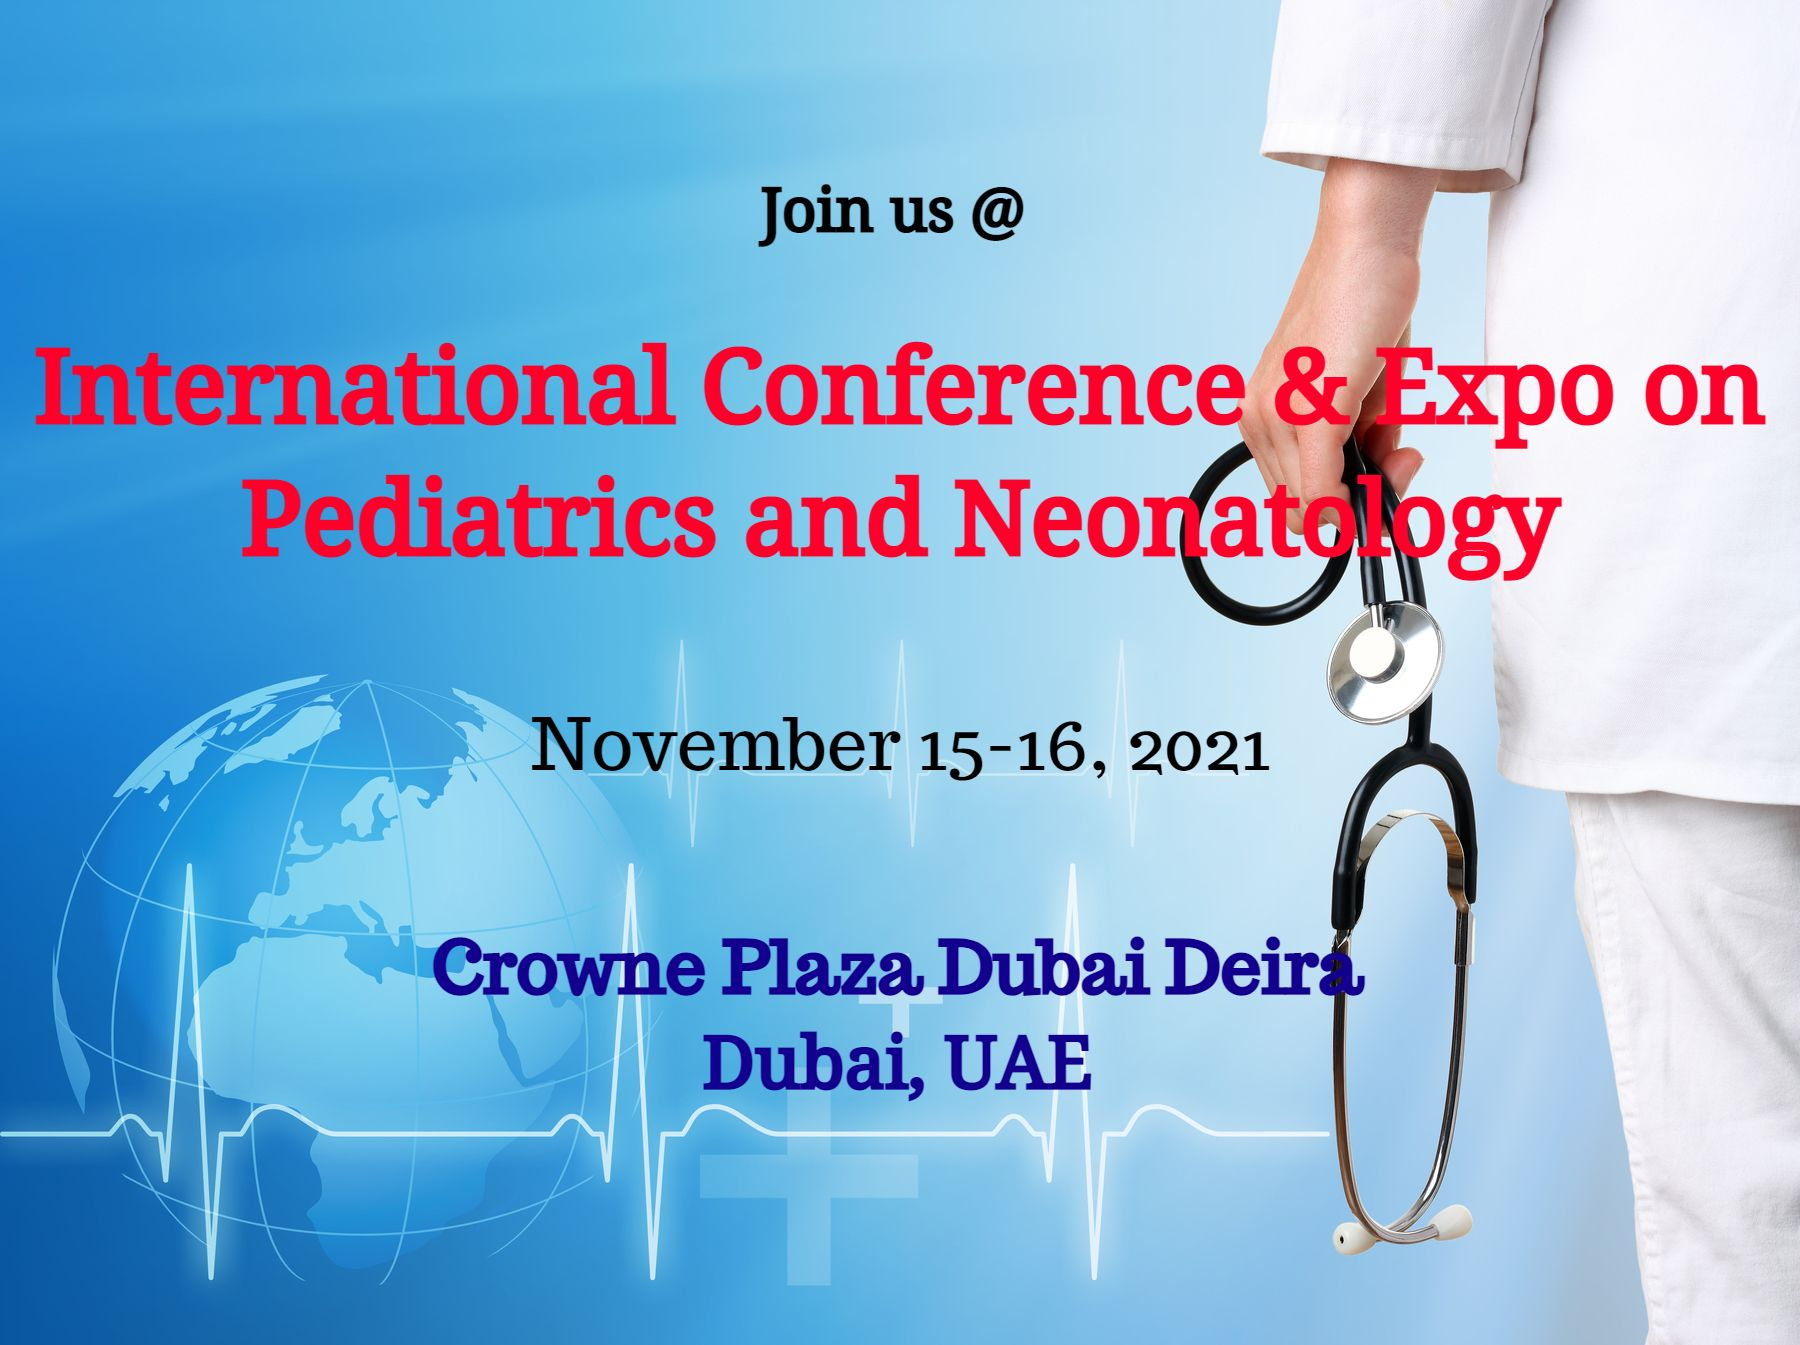 International Conference & Expo on Pediatrics and Neonatology